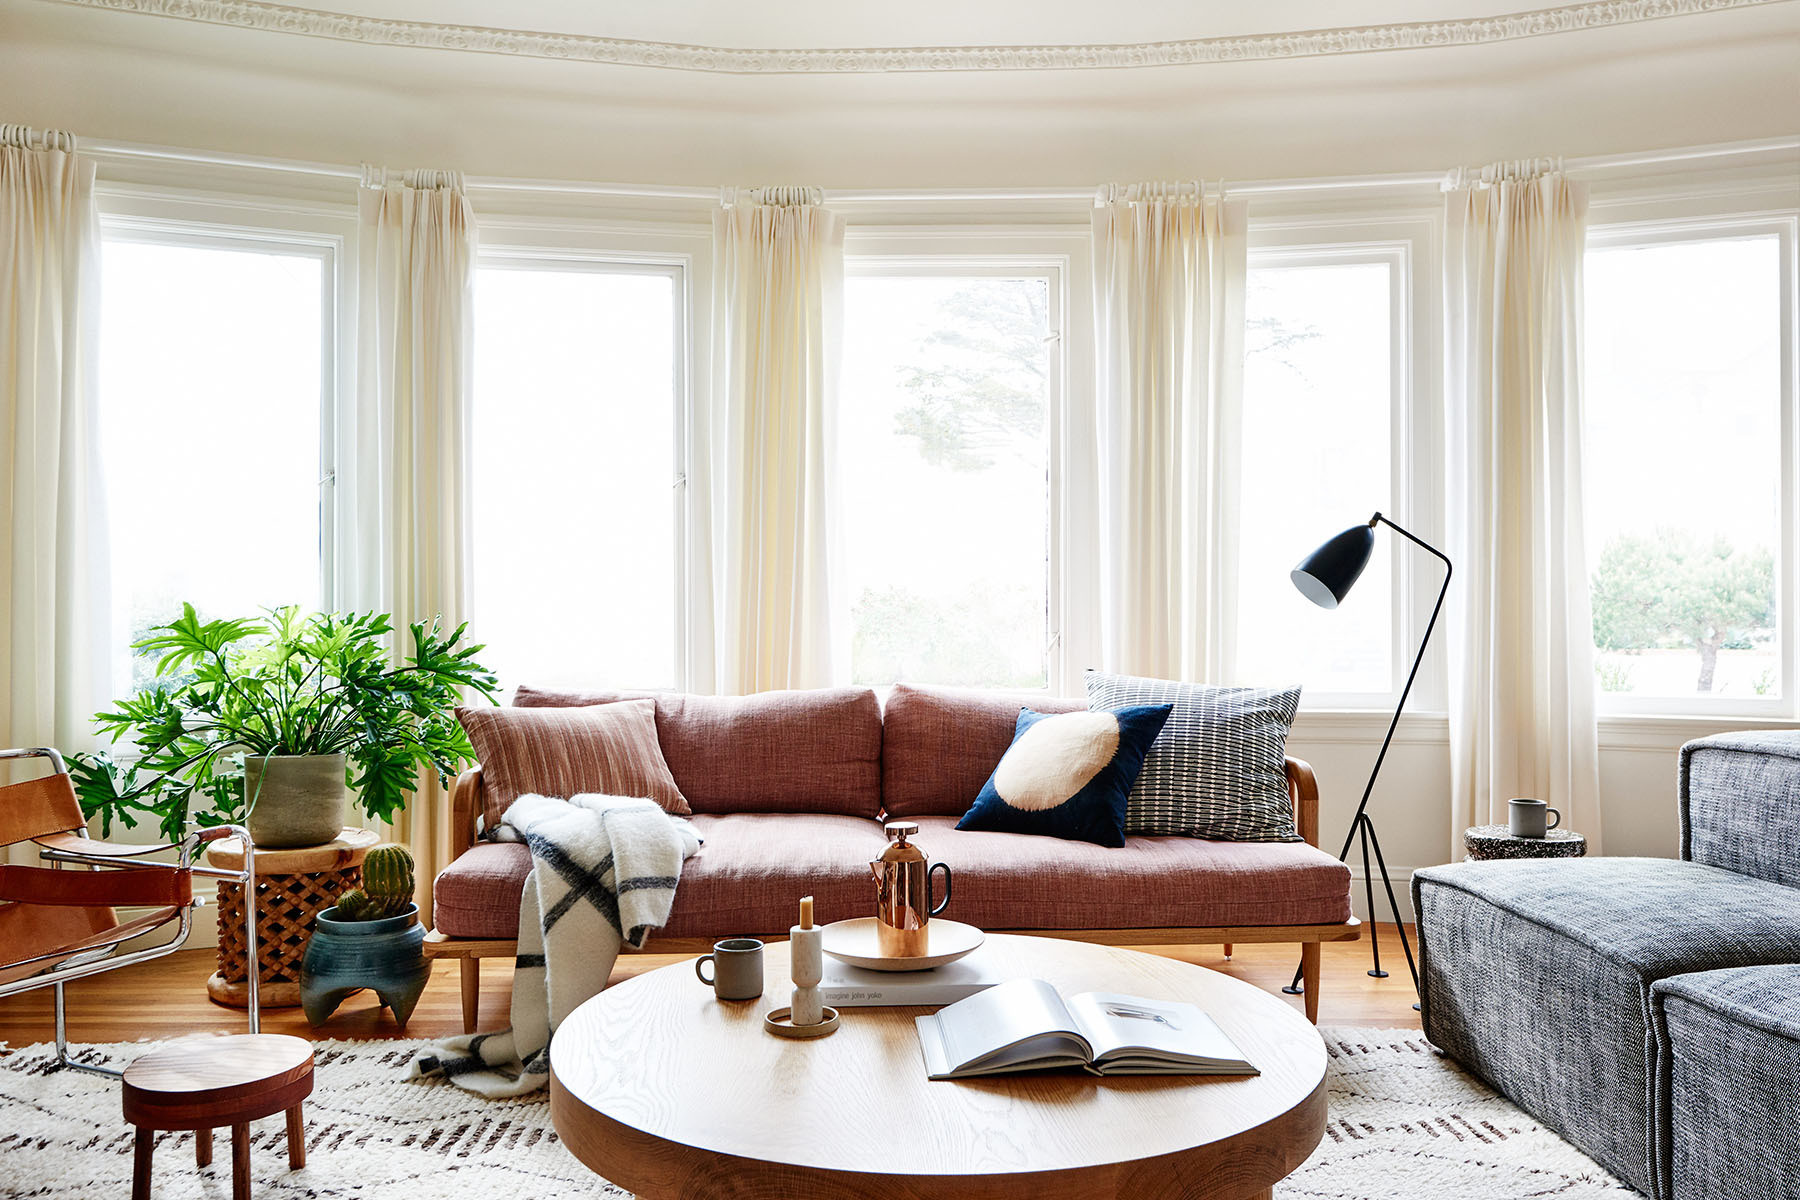 Interior designer Katie Martinez decorates her OuterRichmondhome with eclectic, mid-century finds and sentimental family heirlooms. Chop Wood Co. Custom Sofa |Article Armchairs | Vintage Armchairs | Erica Tanov, Amber Interiors,Aesthetic Union Pillows |Parachute Throw |Armadillo Rug |Anthropologie Side Table |Nickey Kehoe Coffee Table |Gubi Floor Lamp | Vintage Planter |Max Lamb Stool |General Store Stool |Tom Dixon French Press |Blackcreek Mercantile & Trading Co. Bowl.